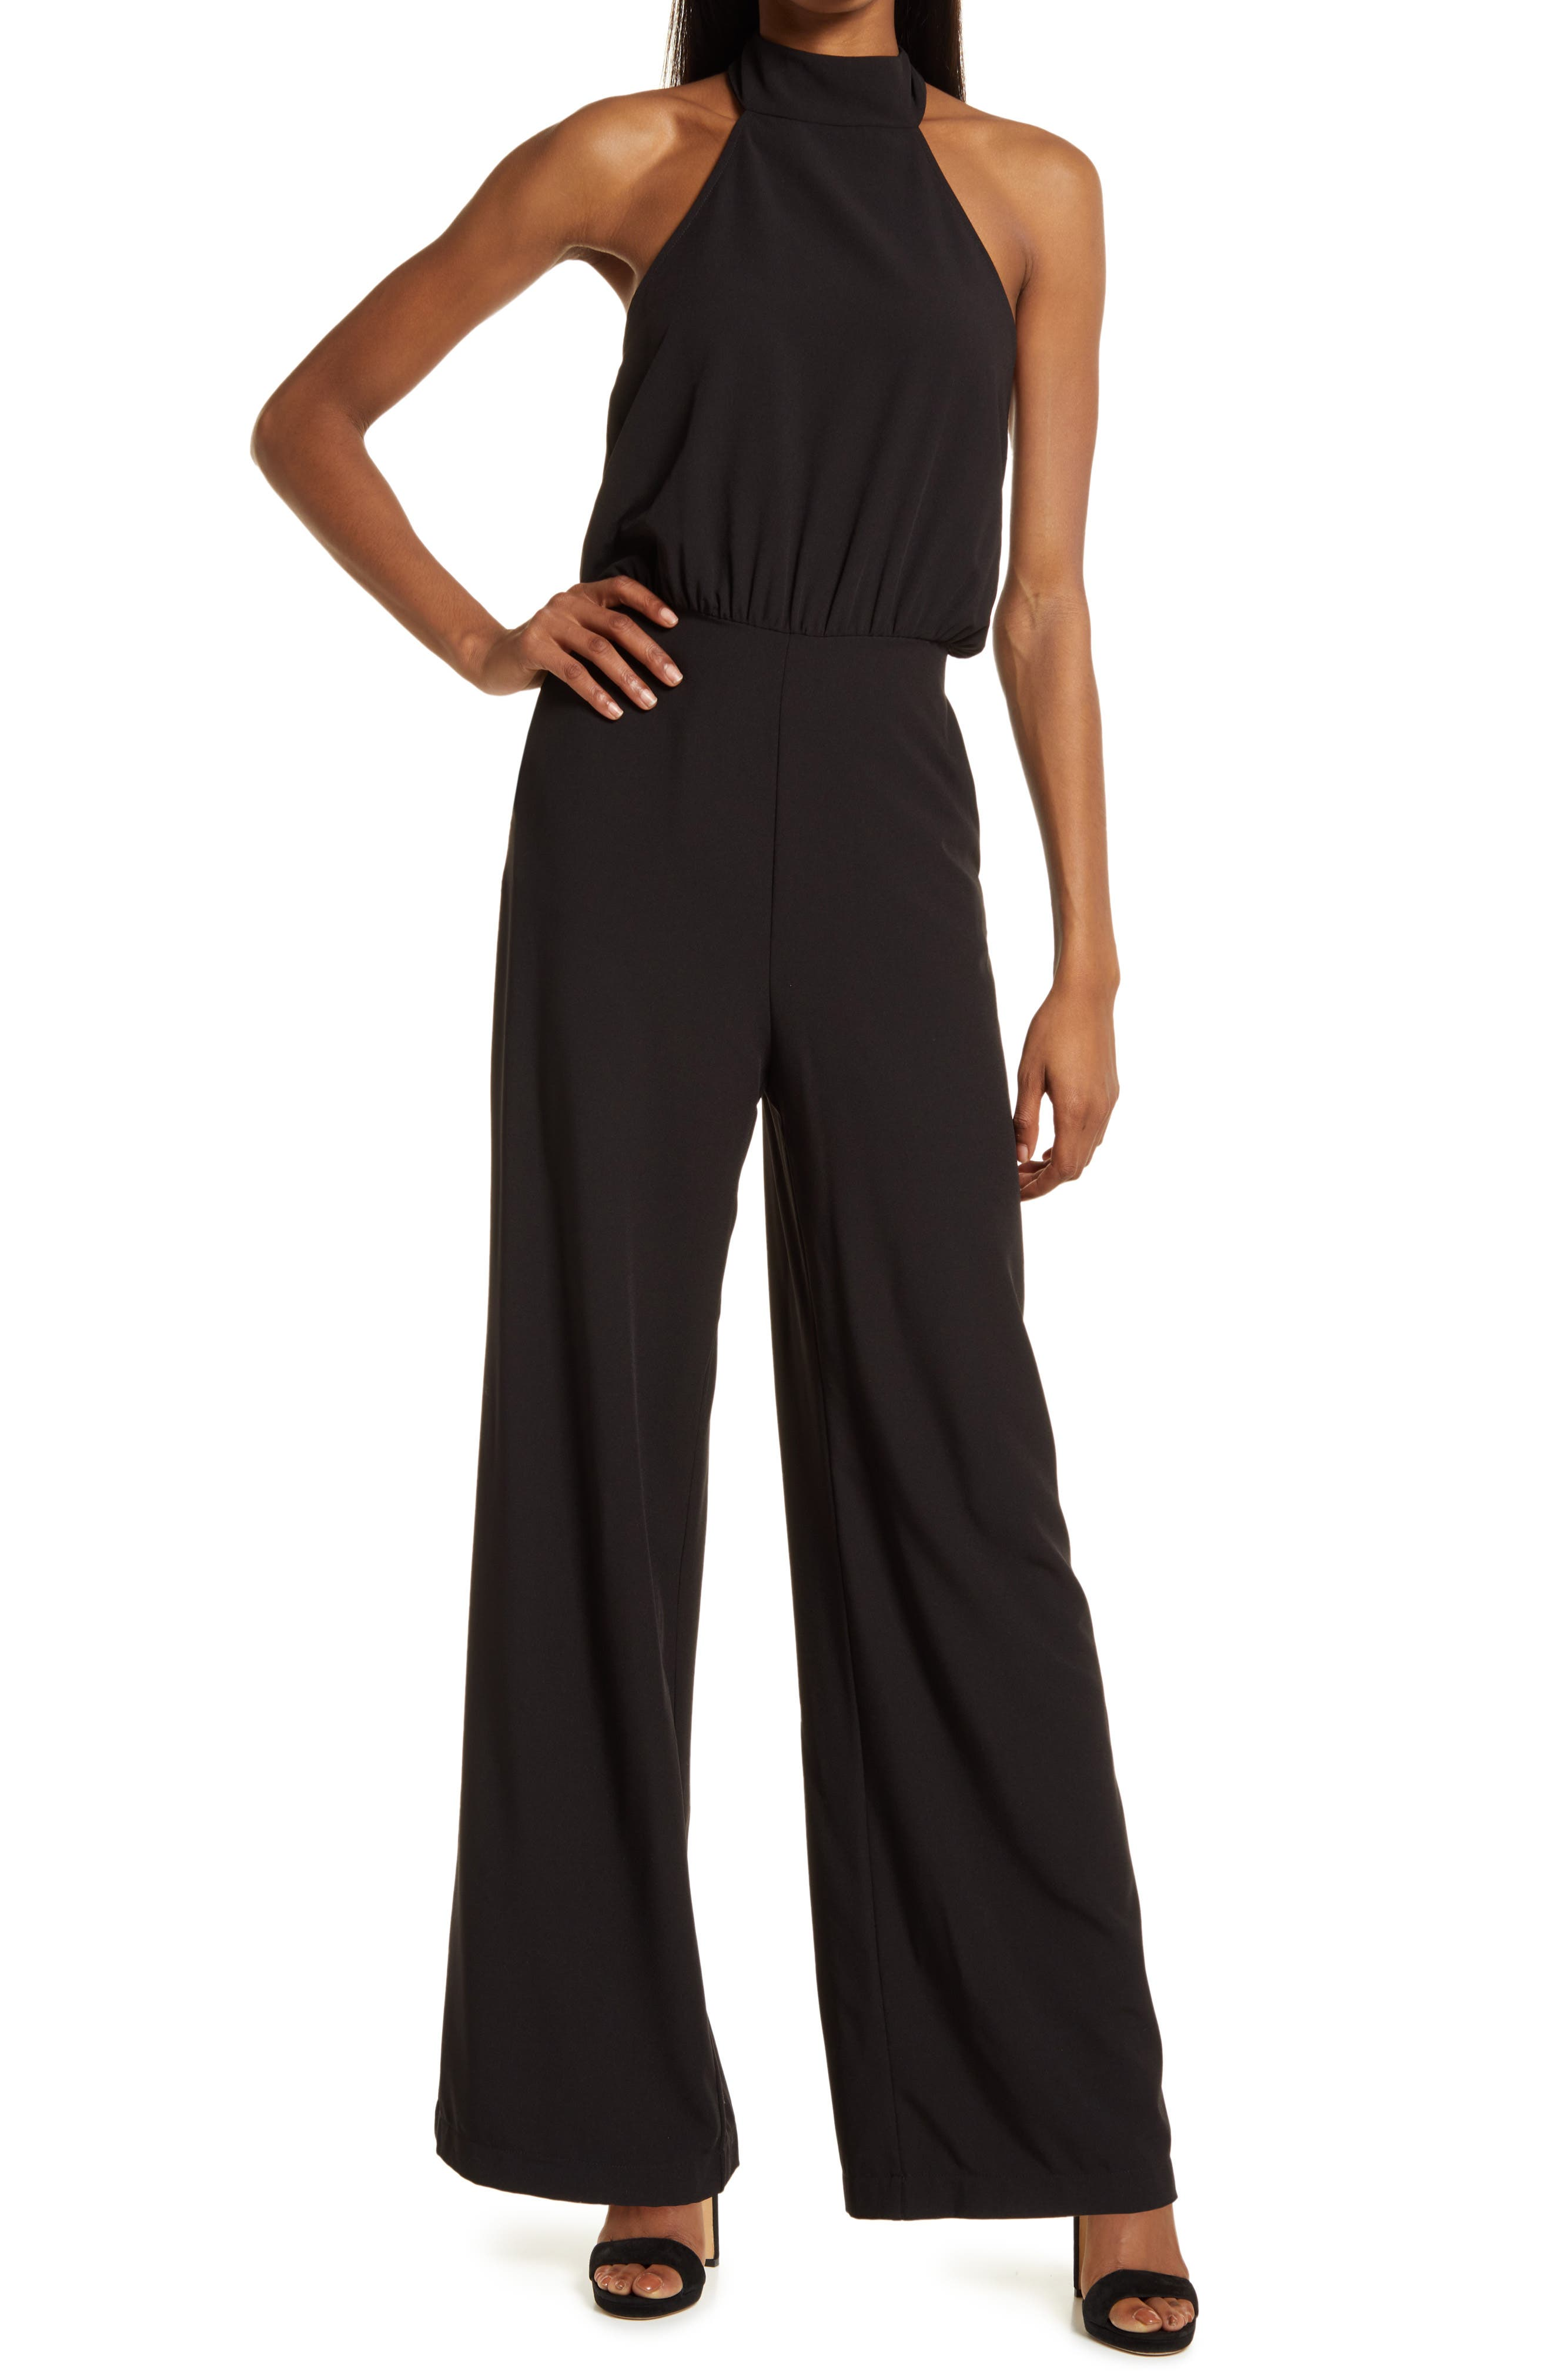 Moment For Life Halter Jumpsuit